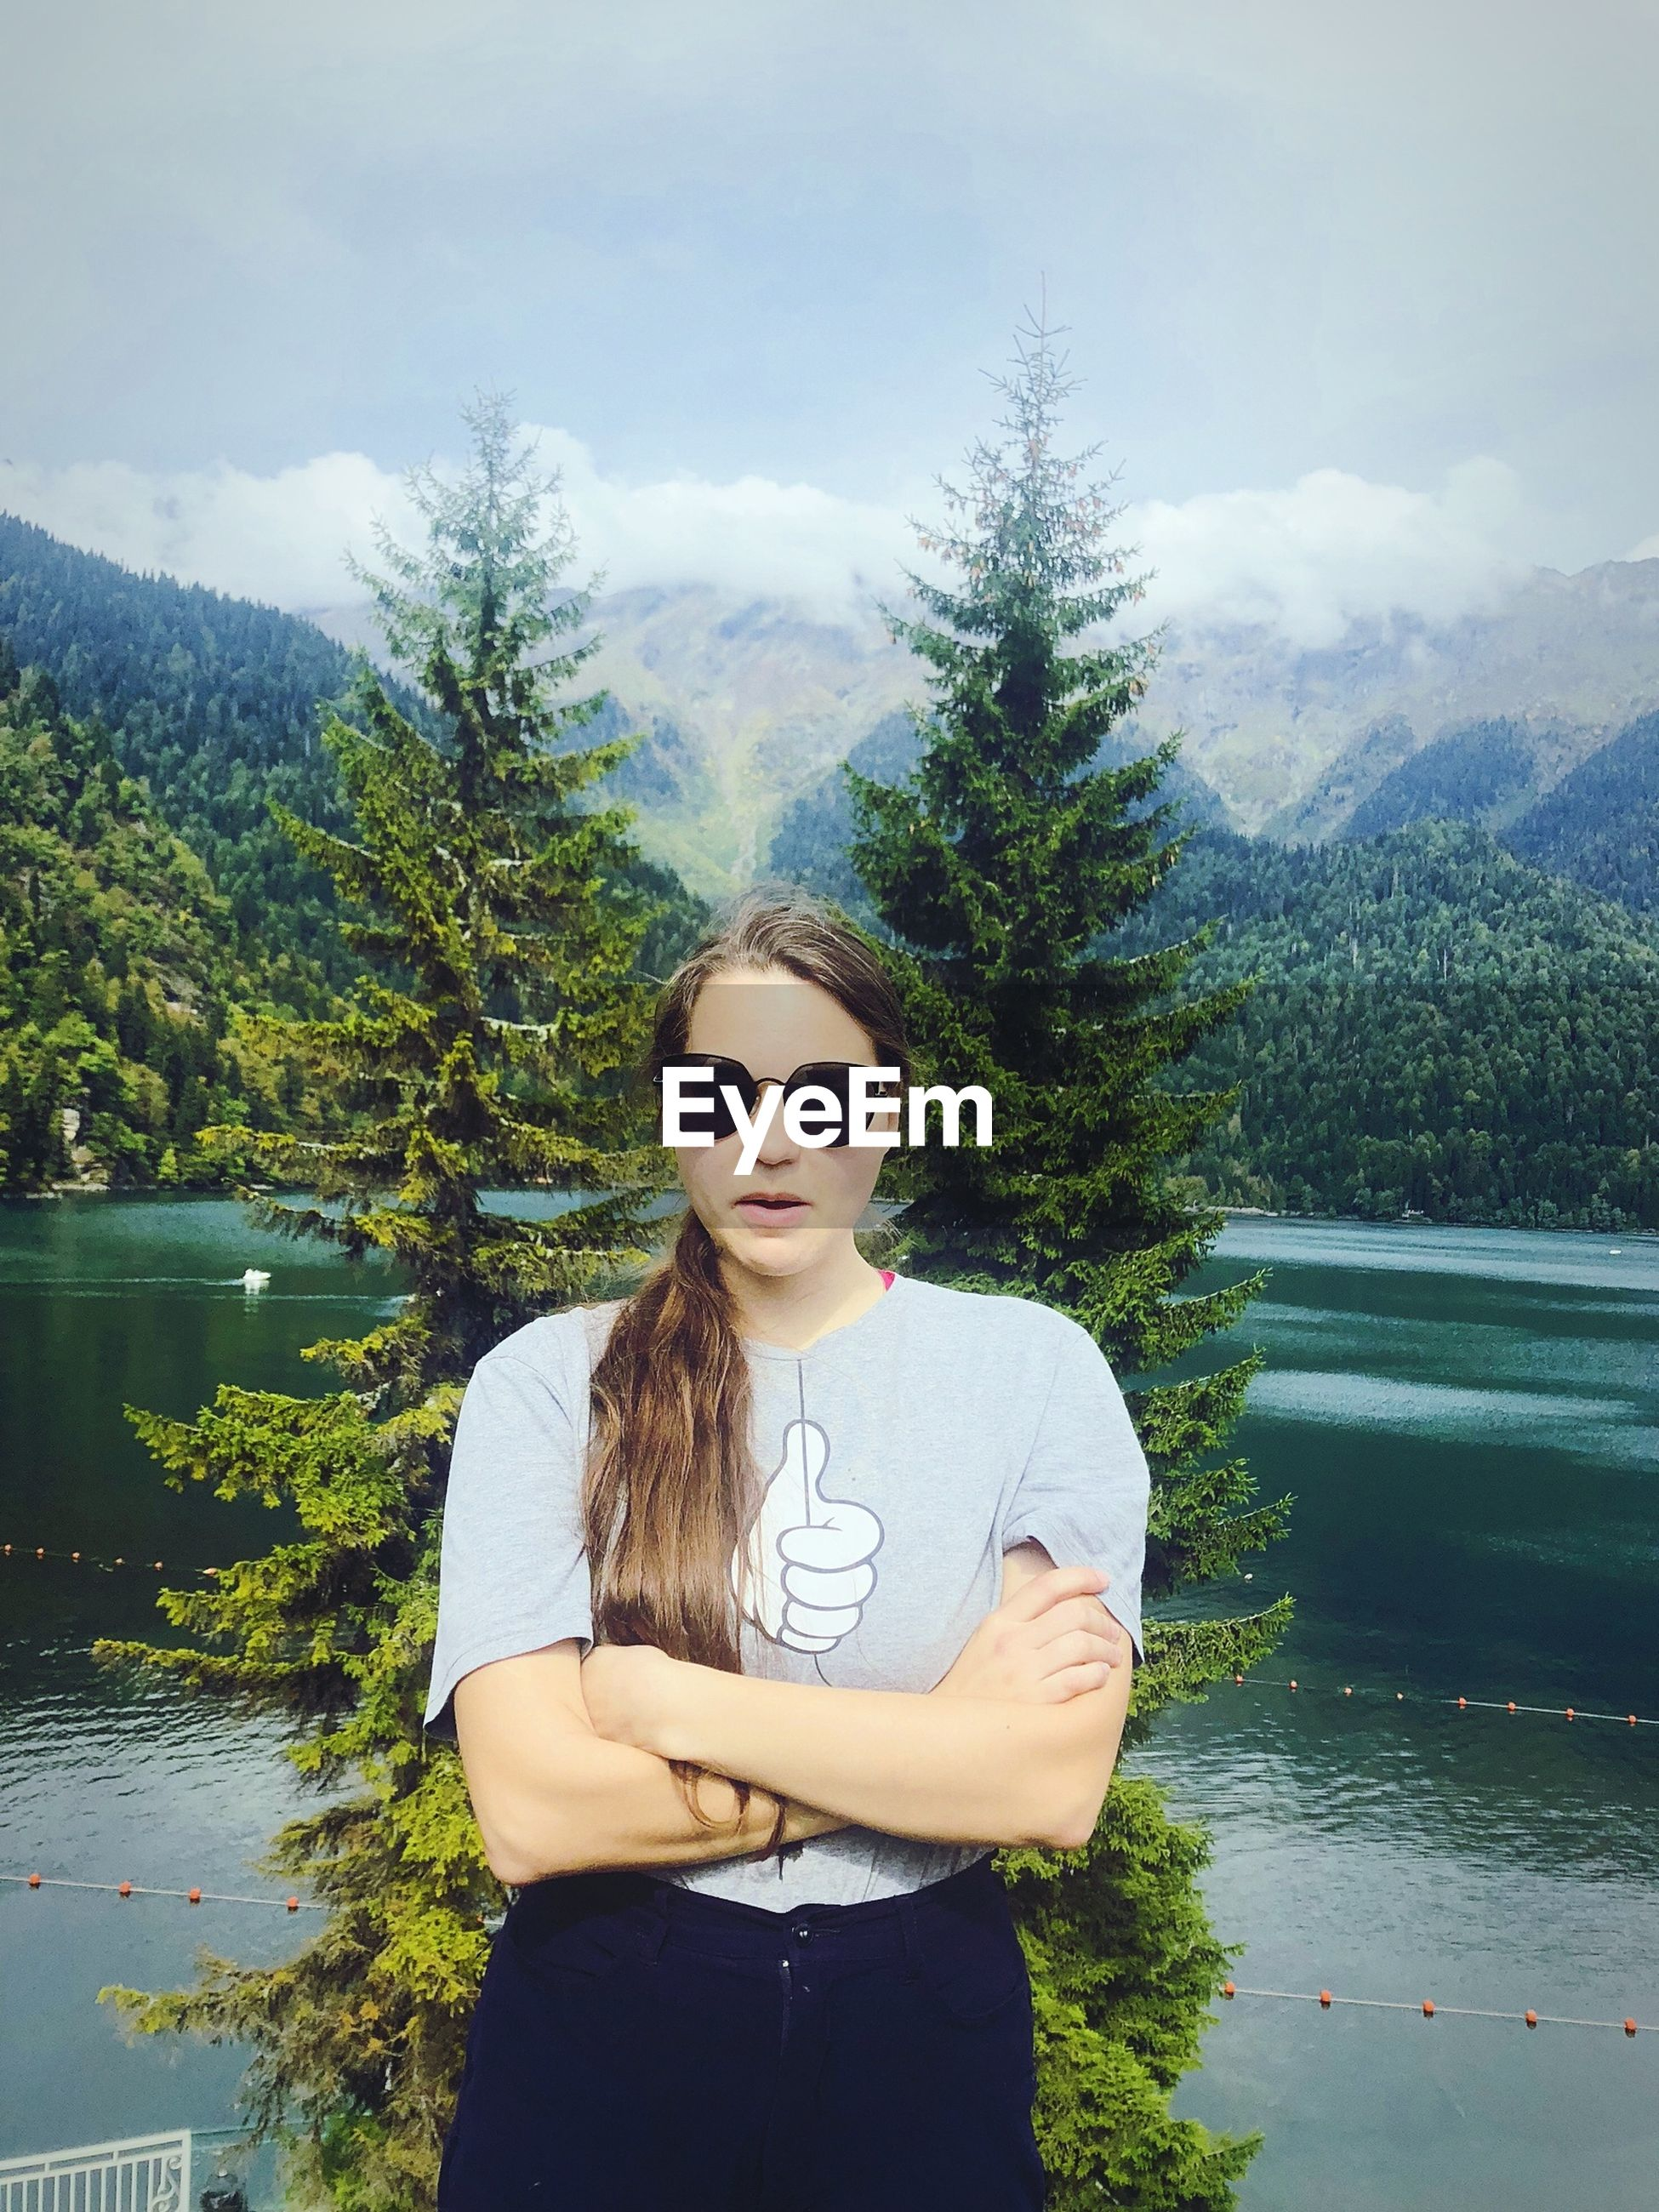 Young woman wearing sunglasses while standing by lake against sky